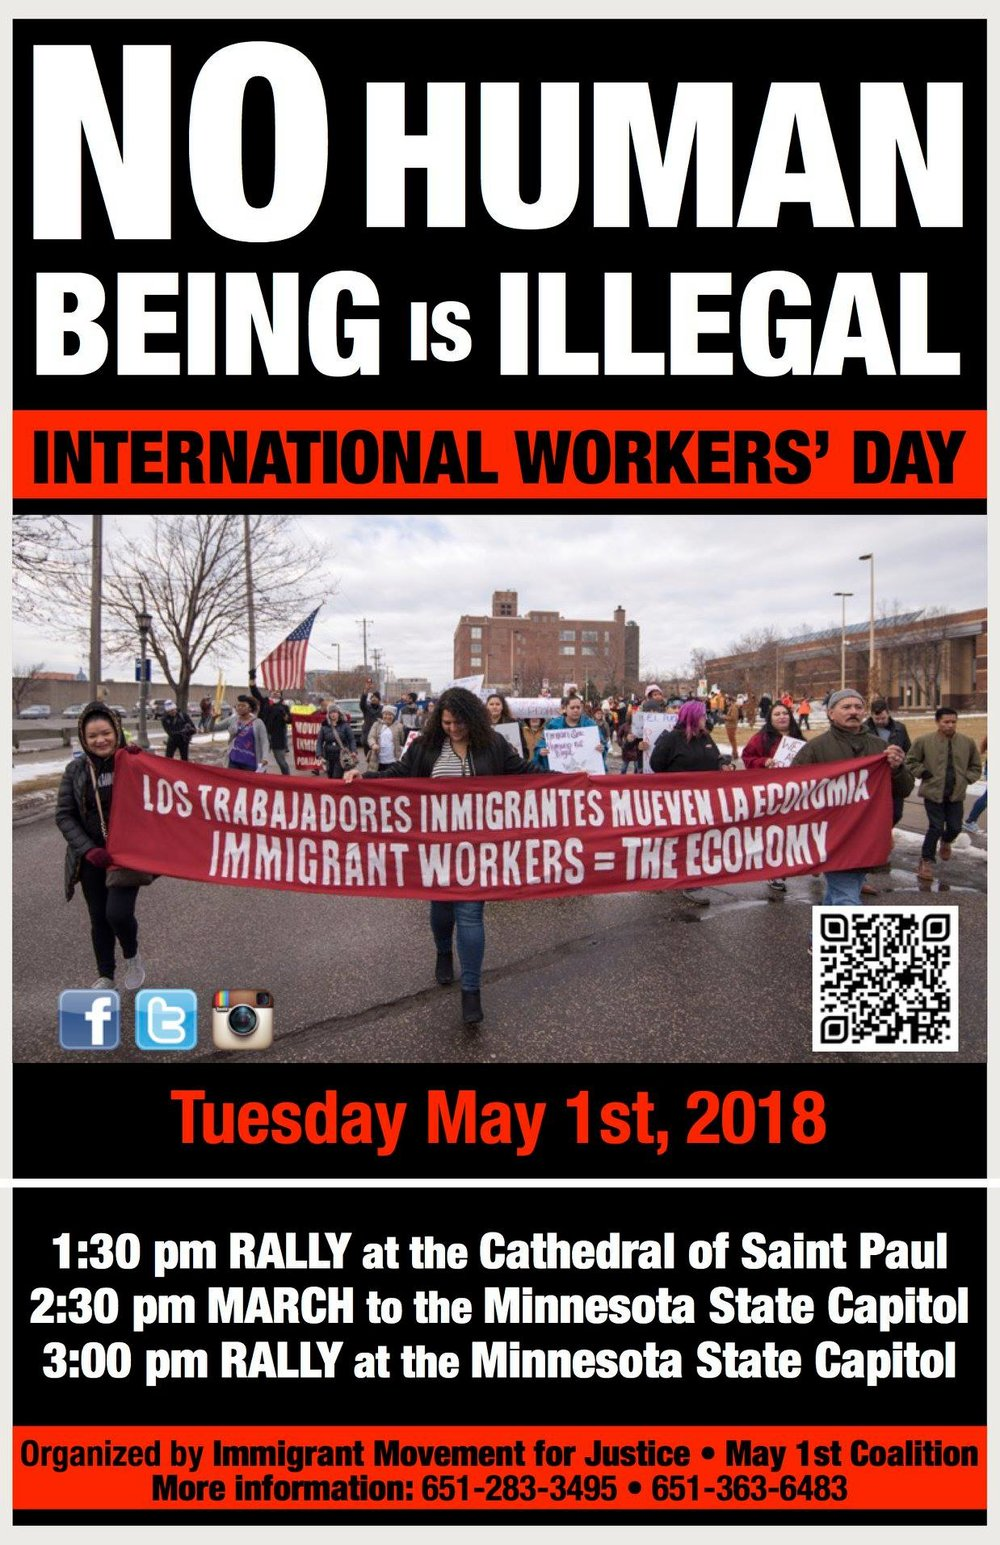 Announcing the March for Immigrant and Refugee Rights, - Please join us May 1st as we march in solidarity with Minnesota's Immigrant Community. We march in support of Dreamers and recipients of TPS and DED. We march to demand legalization for all undocumented immigrants. We march to call for an end to unfair deportations of our neighbors and friends. Let's show up in strength on May 1st!Rally at St Paul's Cathedral at 1:30pm. March at the Mn State Capitol at 2:30pm. Rally at the State Capitol at 3pm. Join us when you can!The organizers of this event are Immigrant Movement for Justice, Indigenous Roots Cultural Arts Center, MN-Immigrant Movement-MIM and more.For more information; Facebook page of Immigrant Movement for Justice.There will be a call for marshals for this event going out soon.